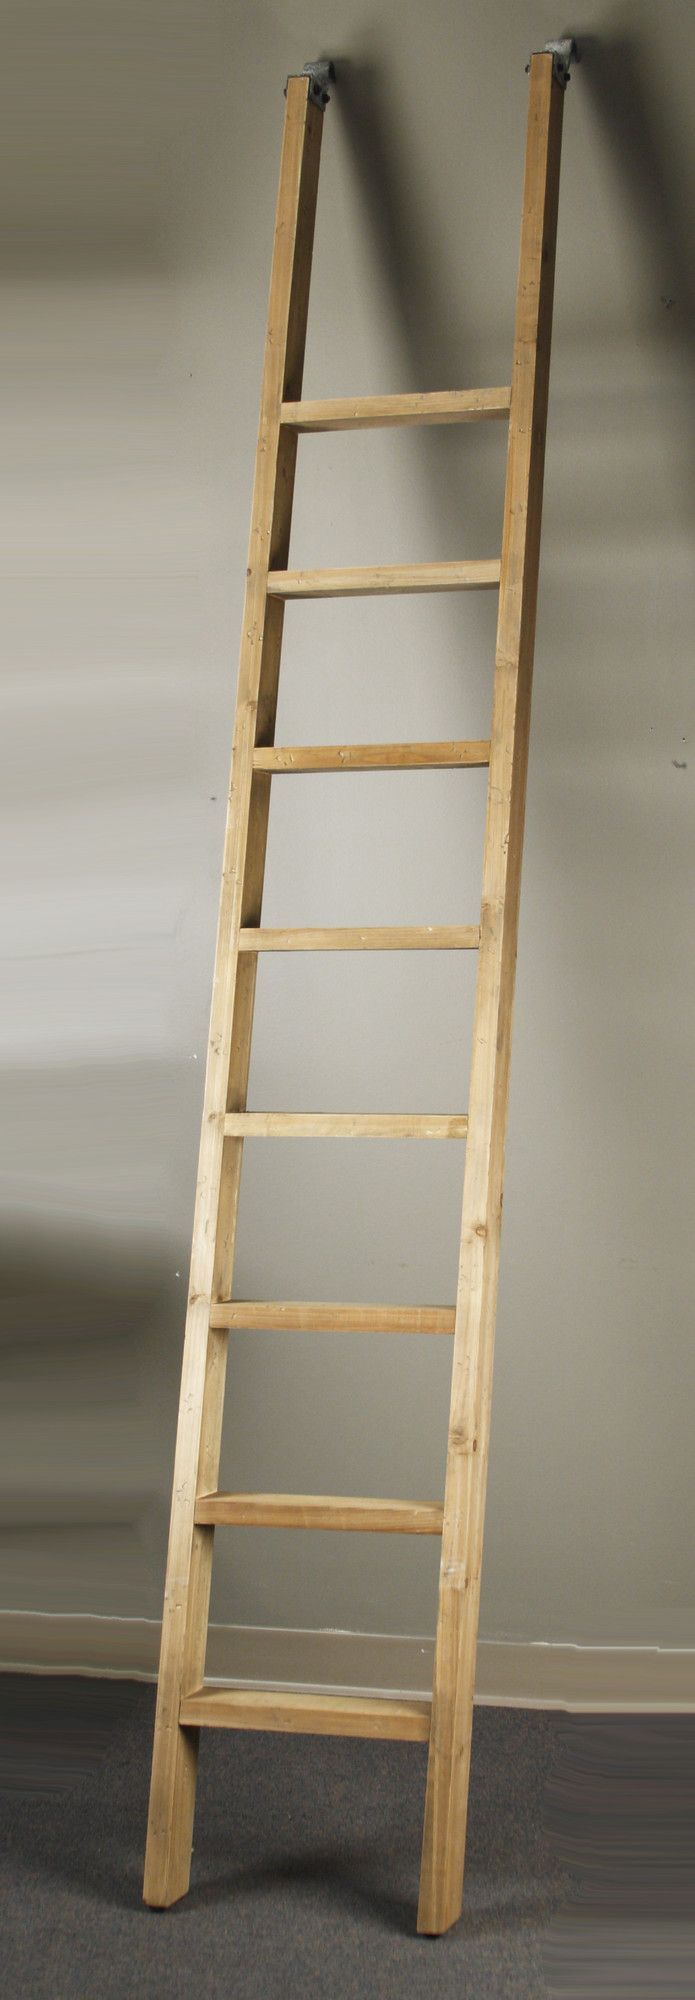 Zentique Inc Velma 9 Ft Recycled Pine Wood Straight Ladder Seni Pertamanan